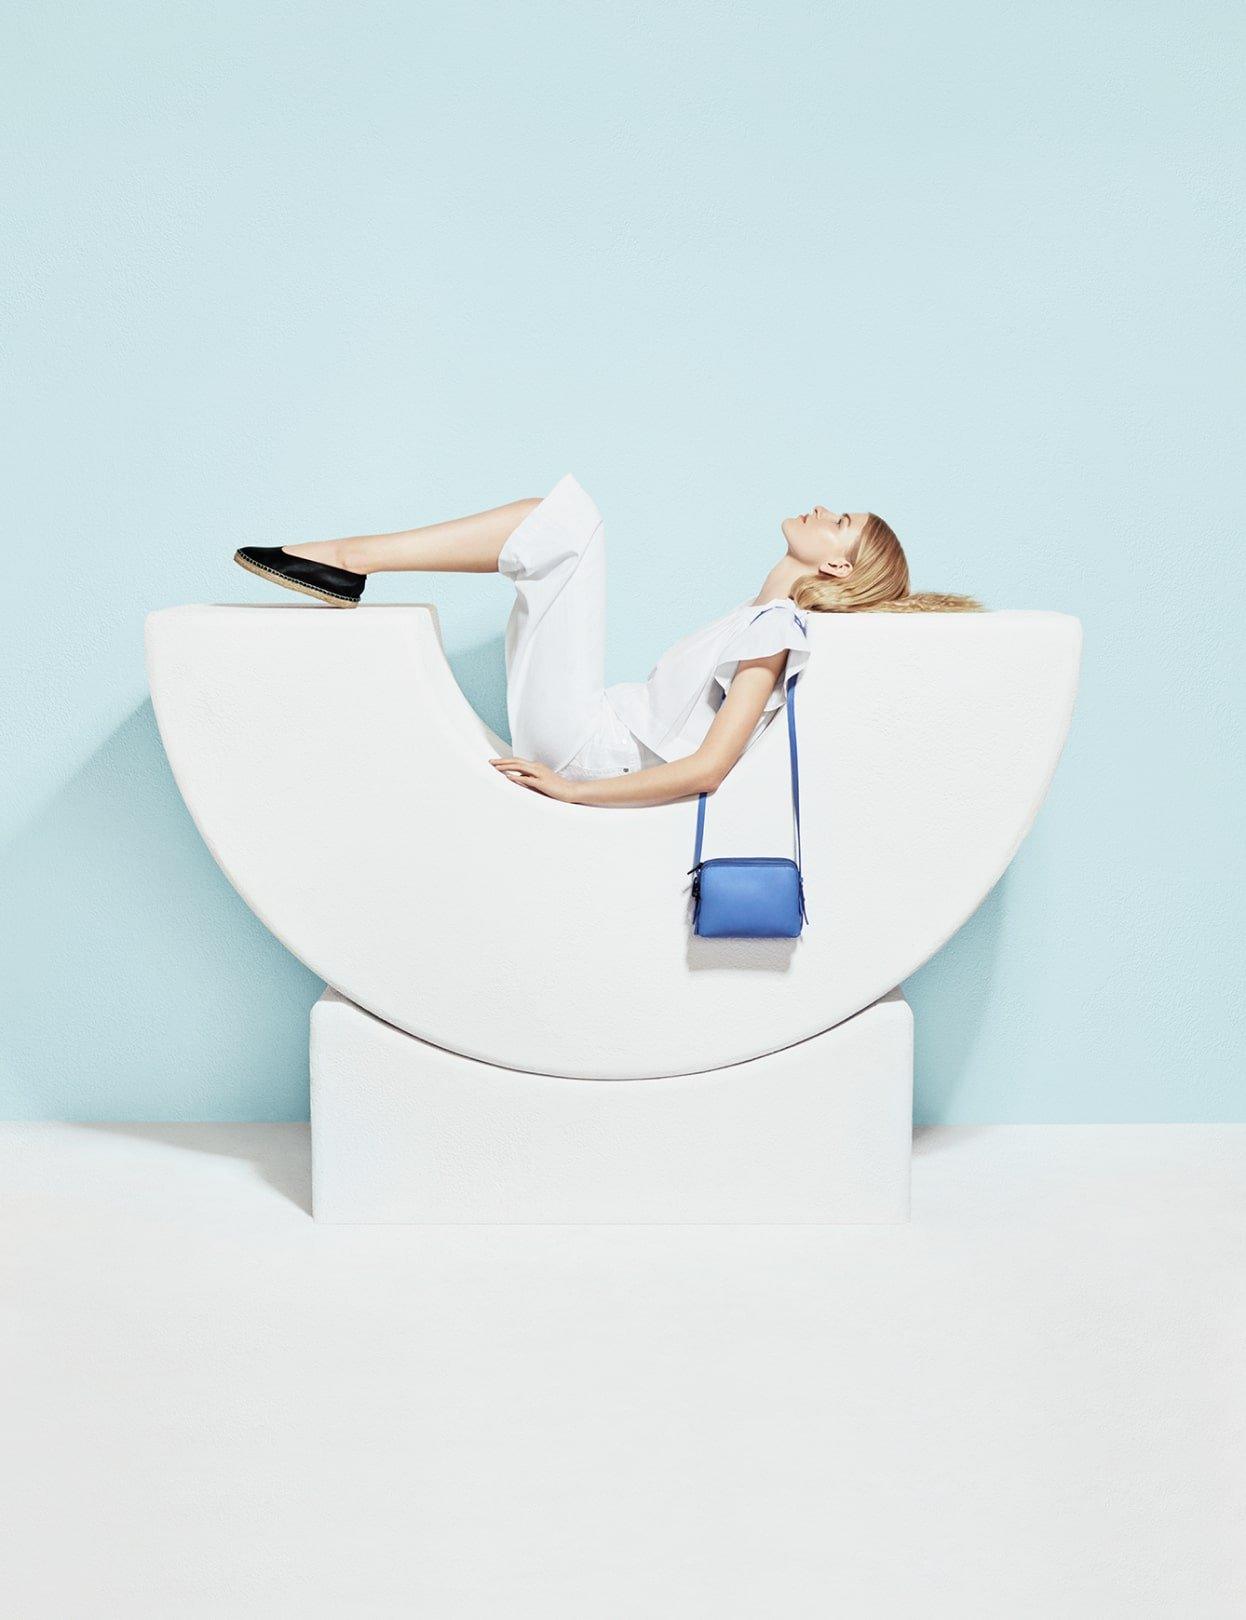 Model sitting in white arch with light blue Loeffler Randall cross-body purse. Art direction by RoAndCo